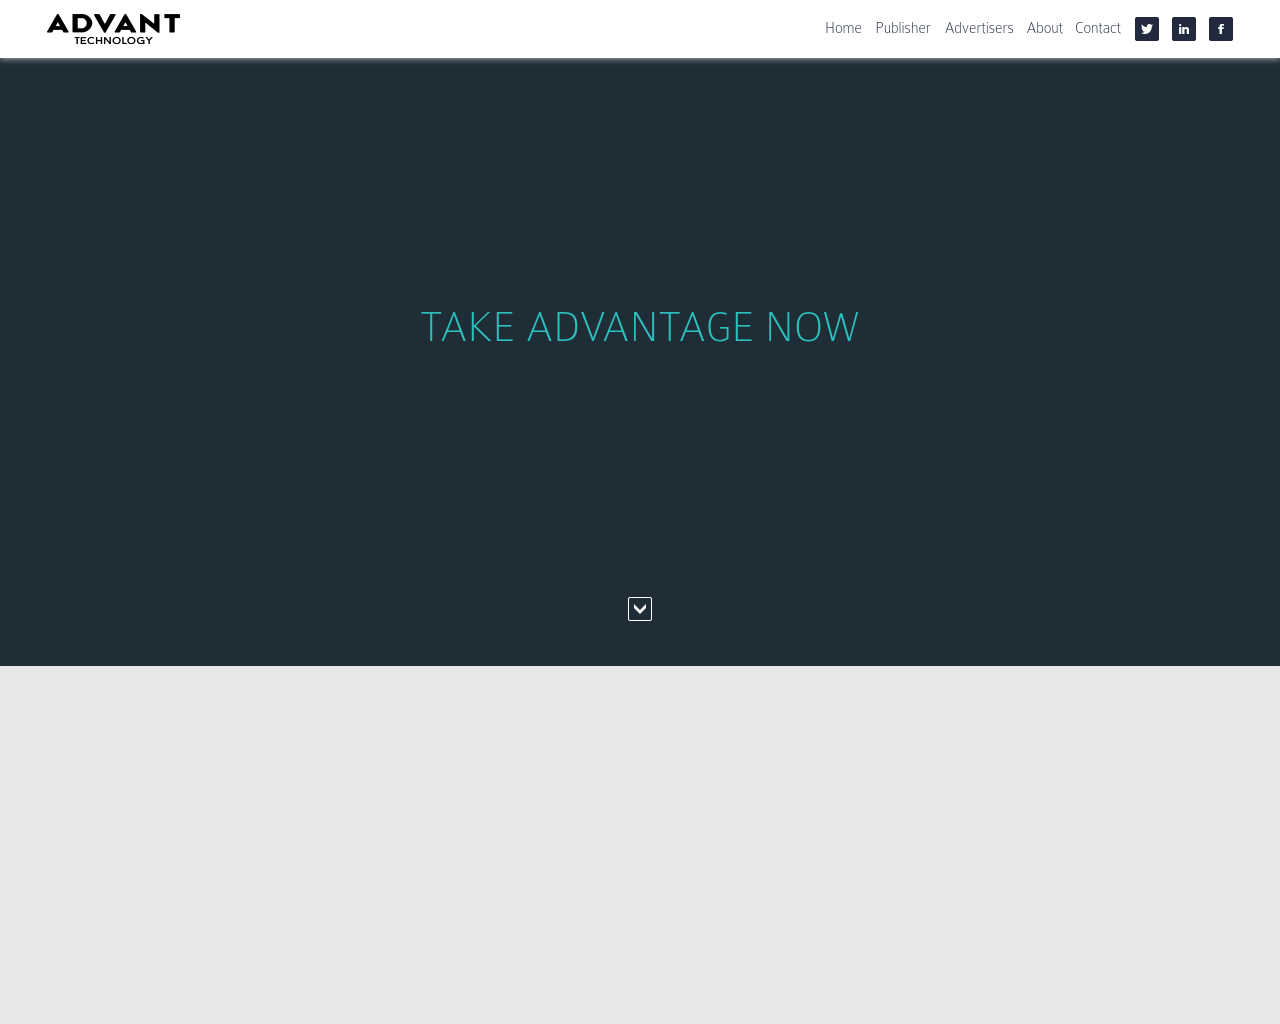 Advant-Technology-Advertising-Reviews-Pricing